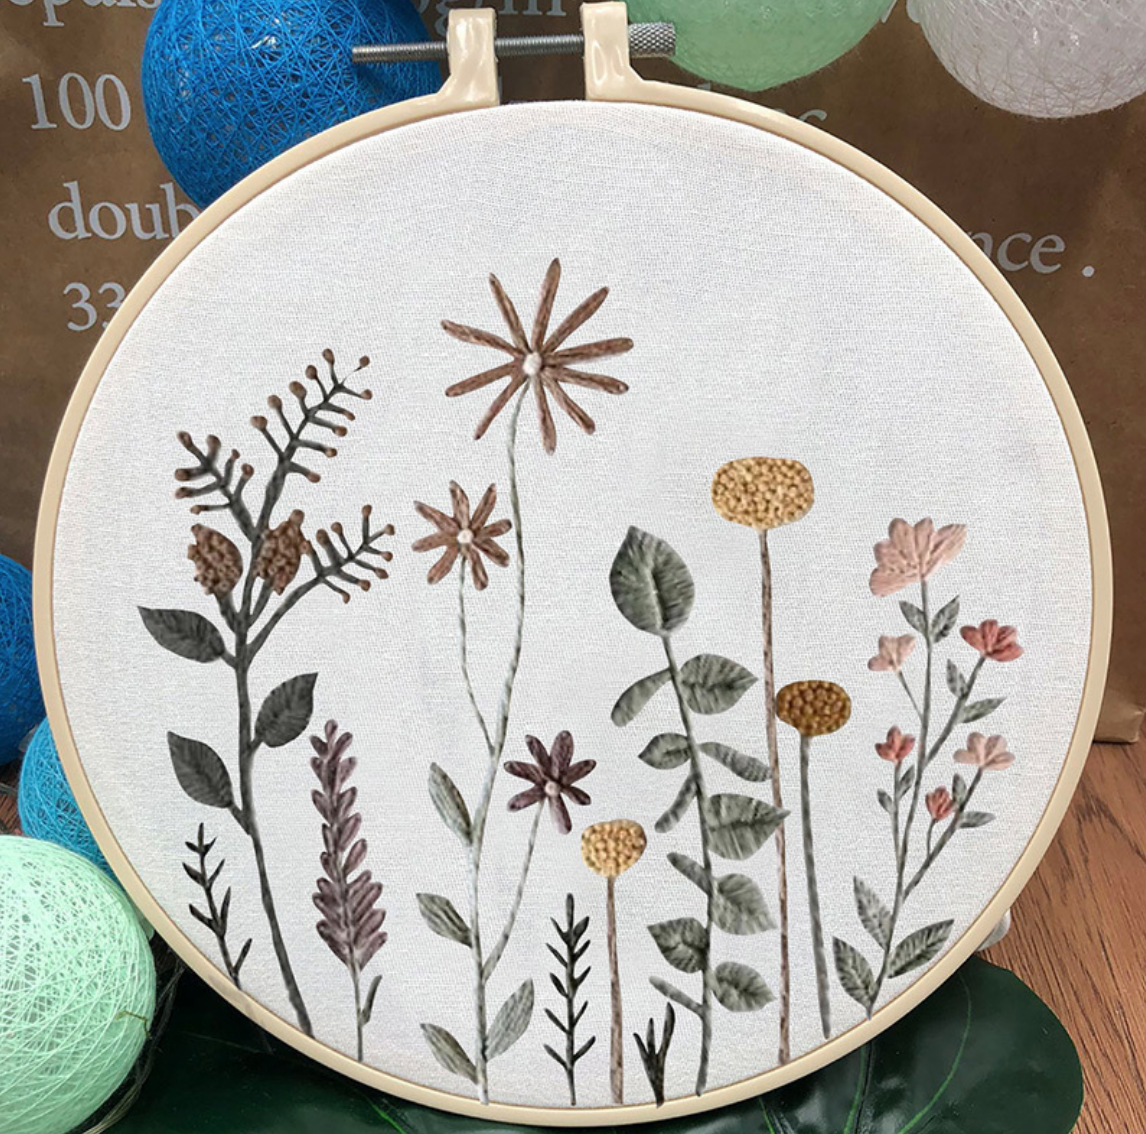 Su Zi Muted Dainty Rising Flowers 20cm Embroidery